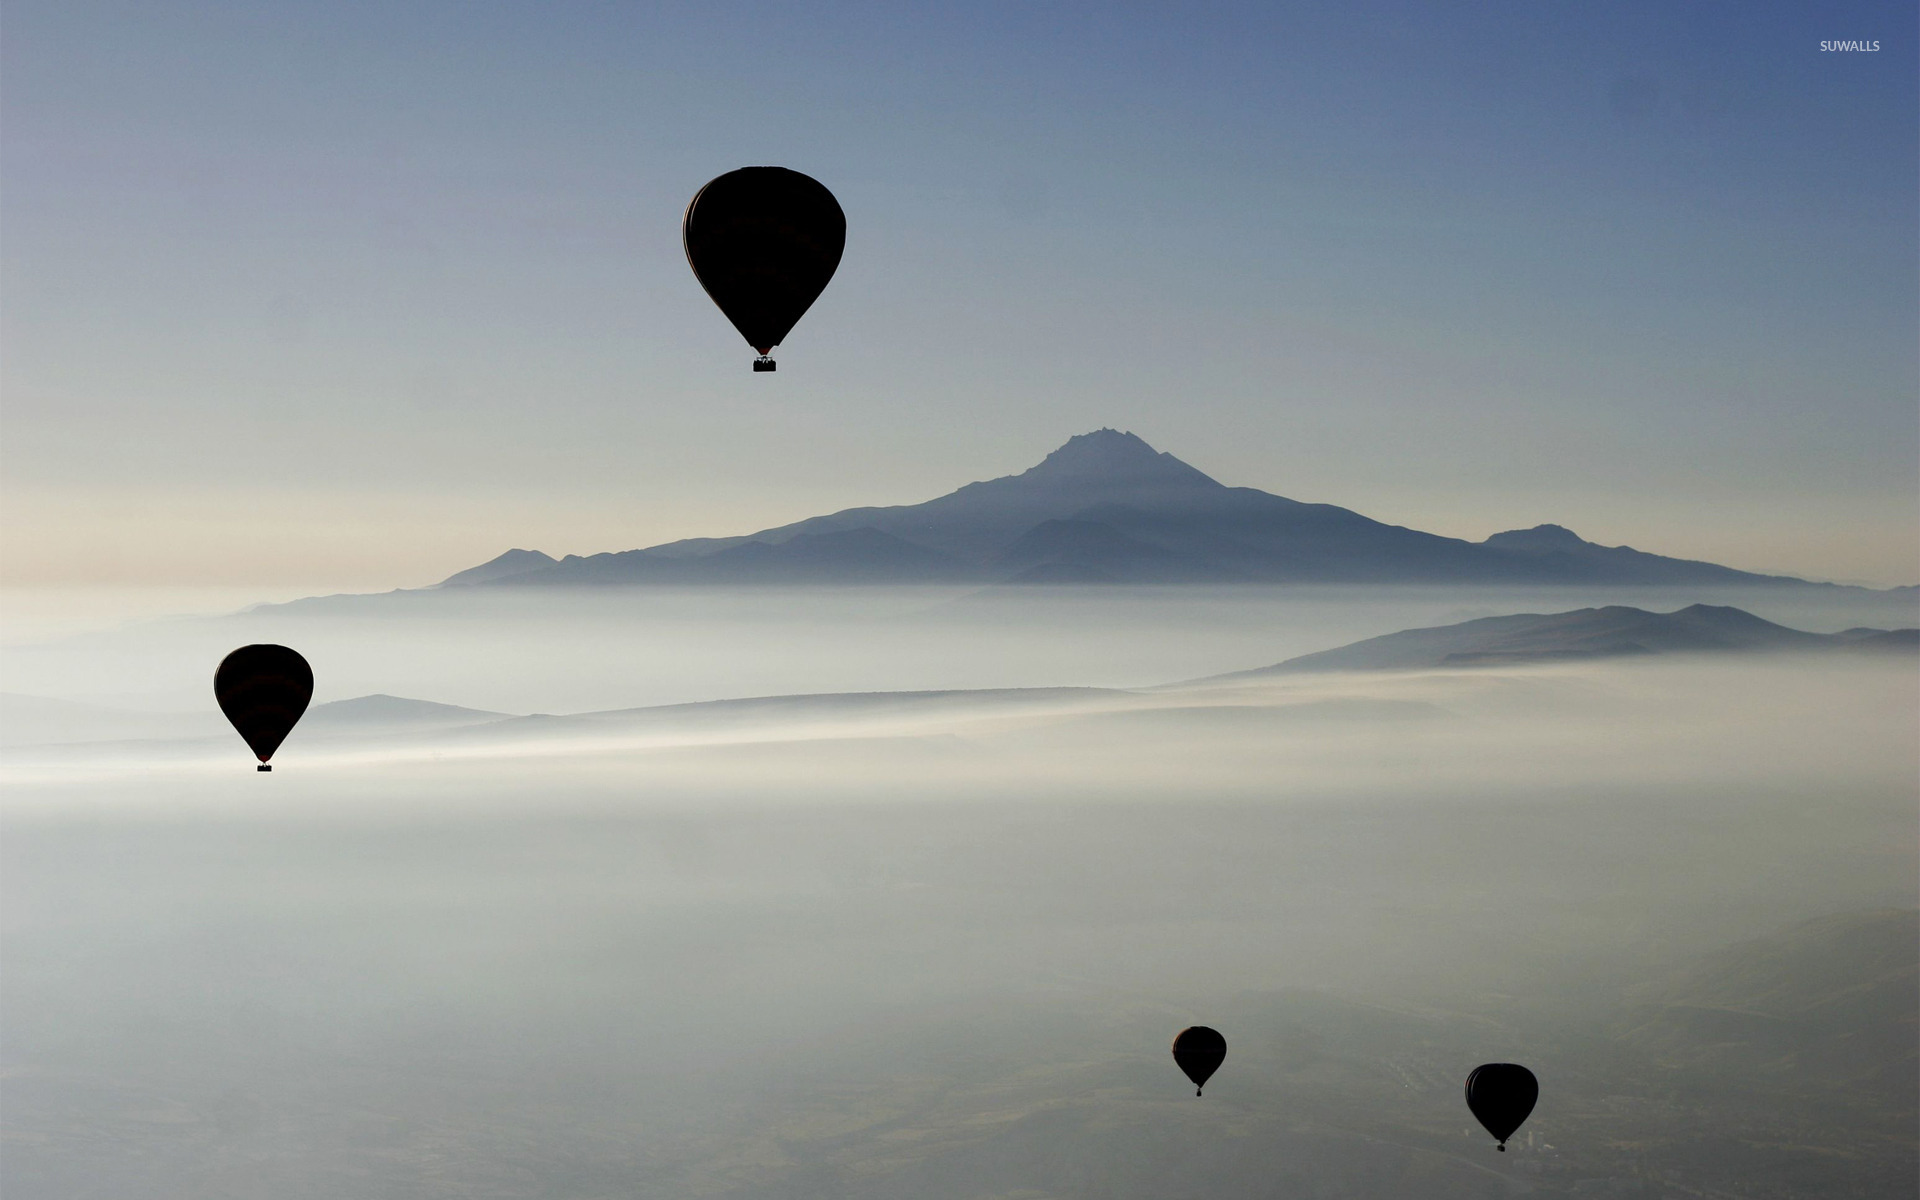 Hot Air balloons in the sky wallpaper - Artistic ...